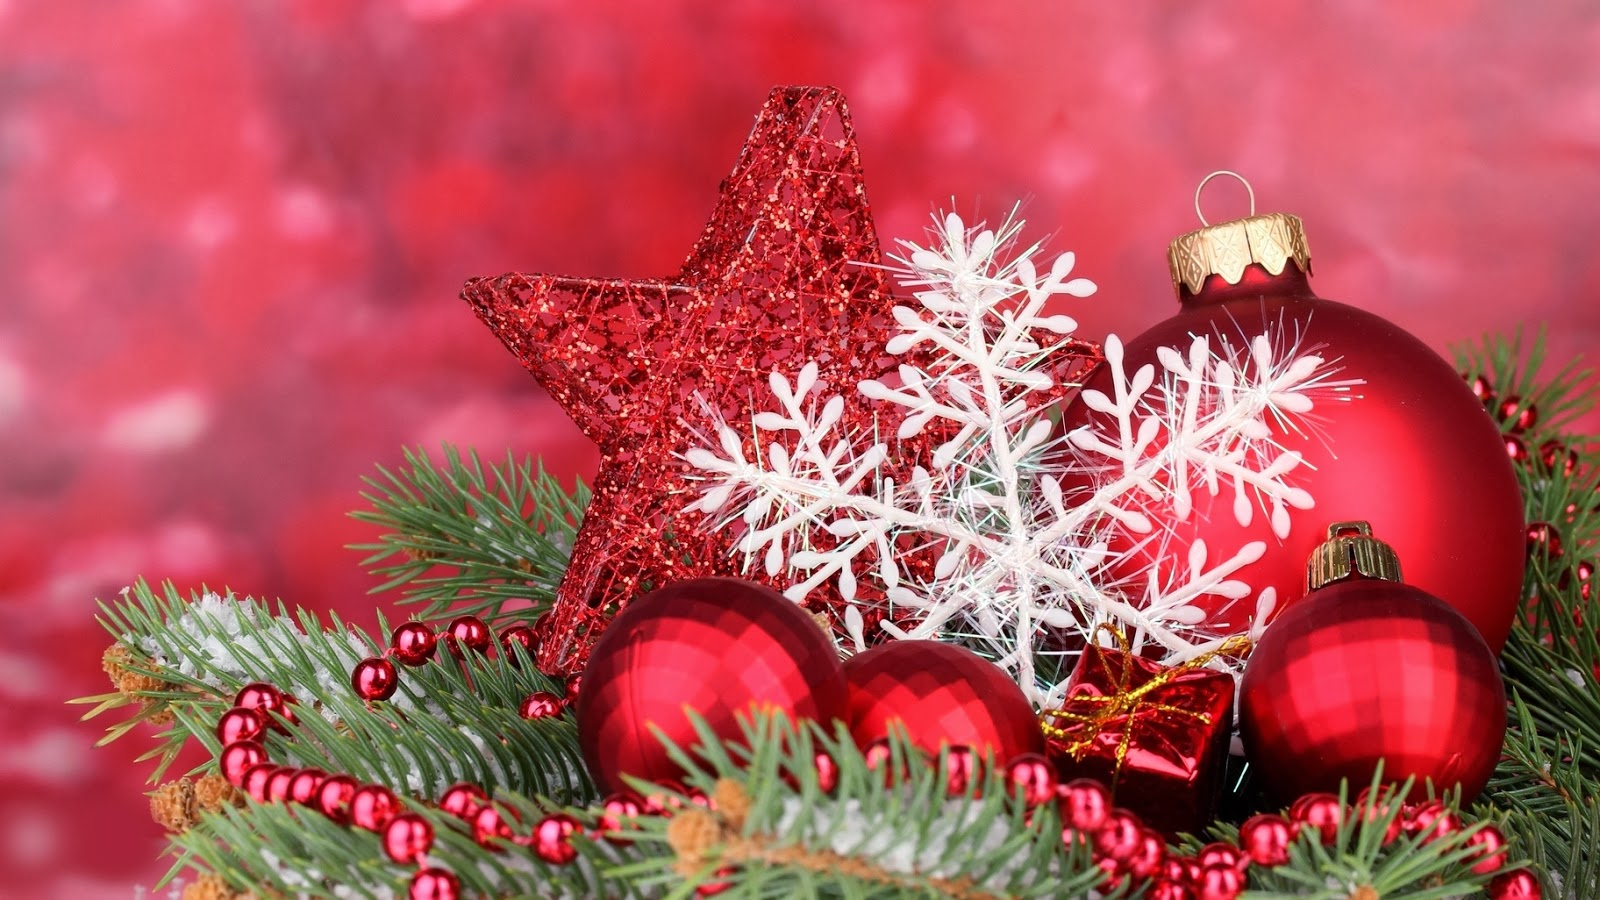 Holiday Christmas Hd Wallpaper: 21 Most Excellent Christmas Holiday Delights : Merry